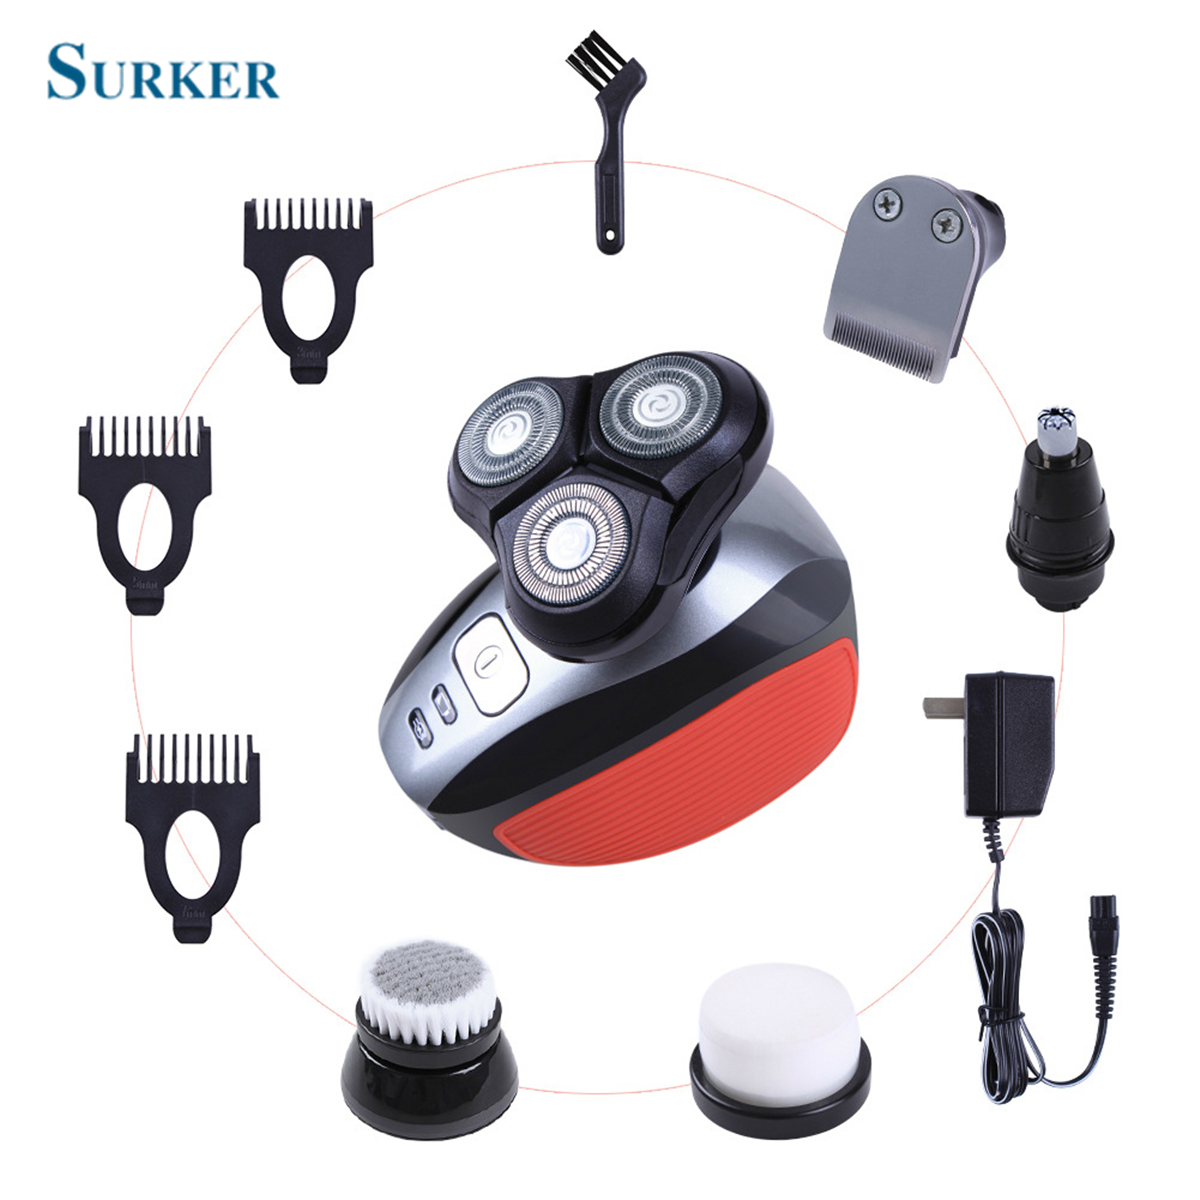 все цены на SURKER LK-1810 5 in1 Washable Rechargeable Electric Shaver Men Razor Beard Nose Hair Trimmer EU Plug Father 's Day Gift